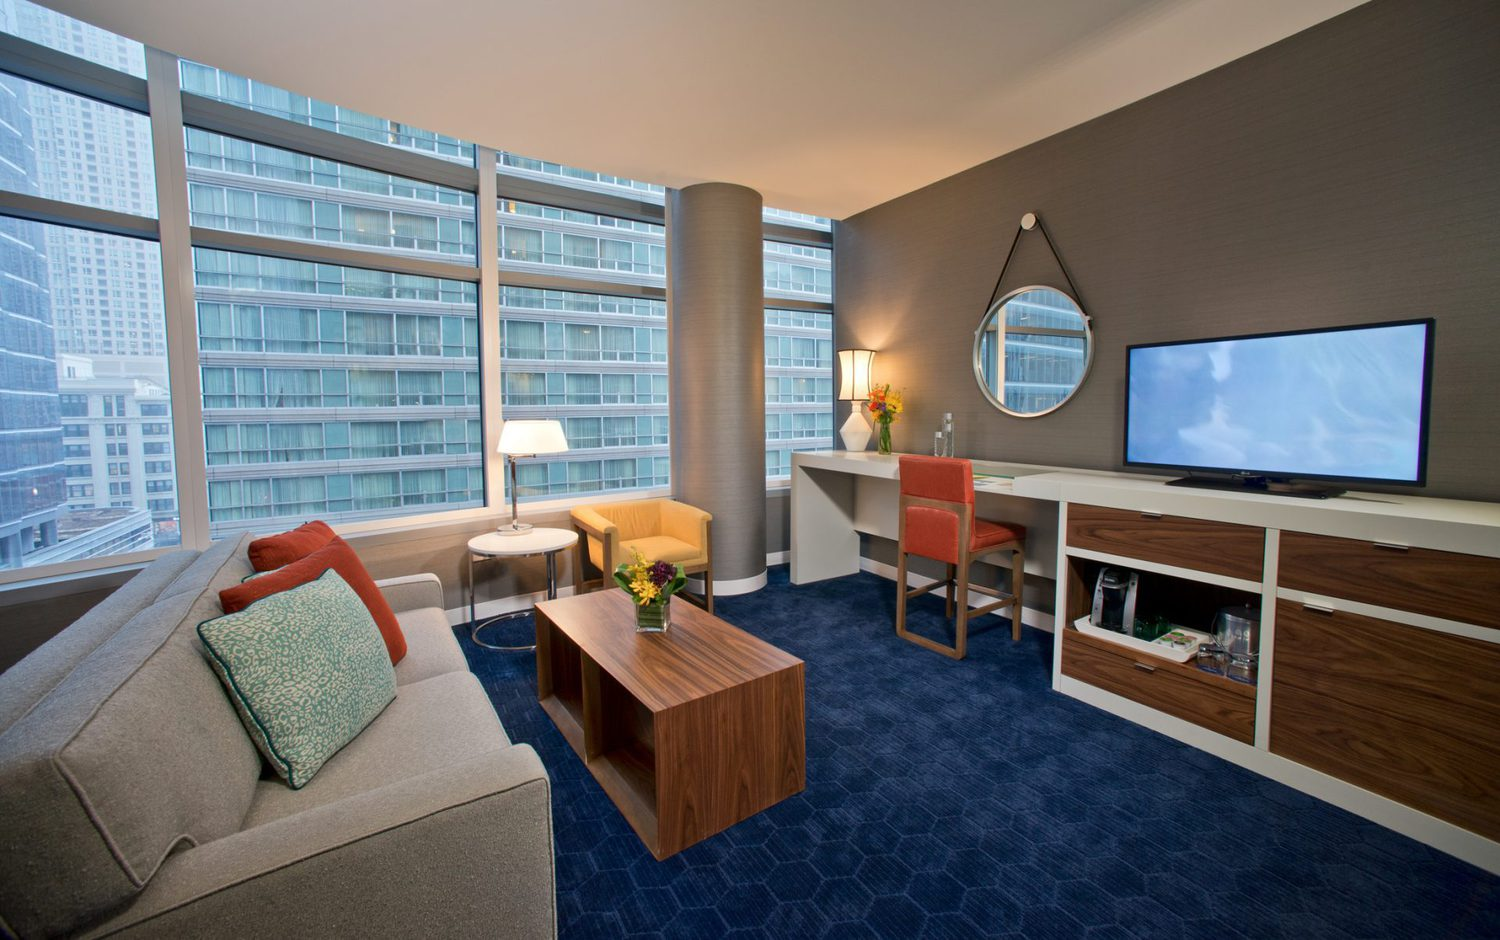 Kinzie hotel chicago il jobs hospitality online for Hotels 60657